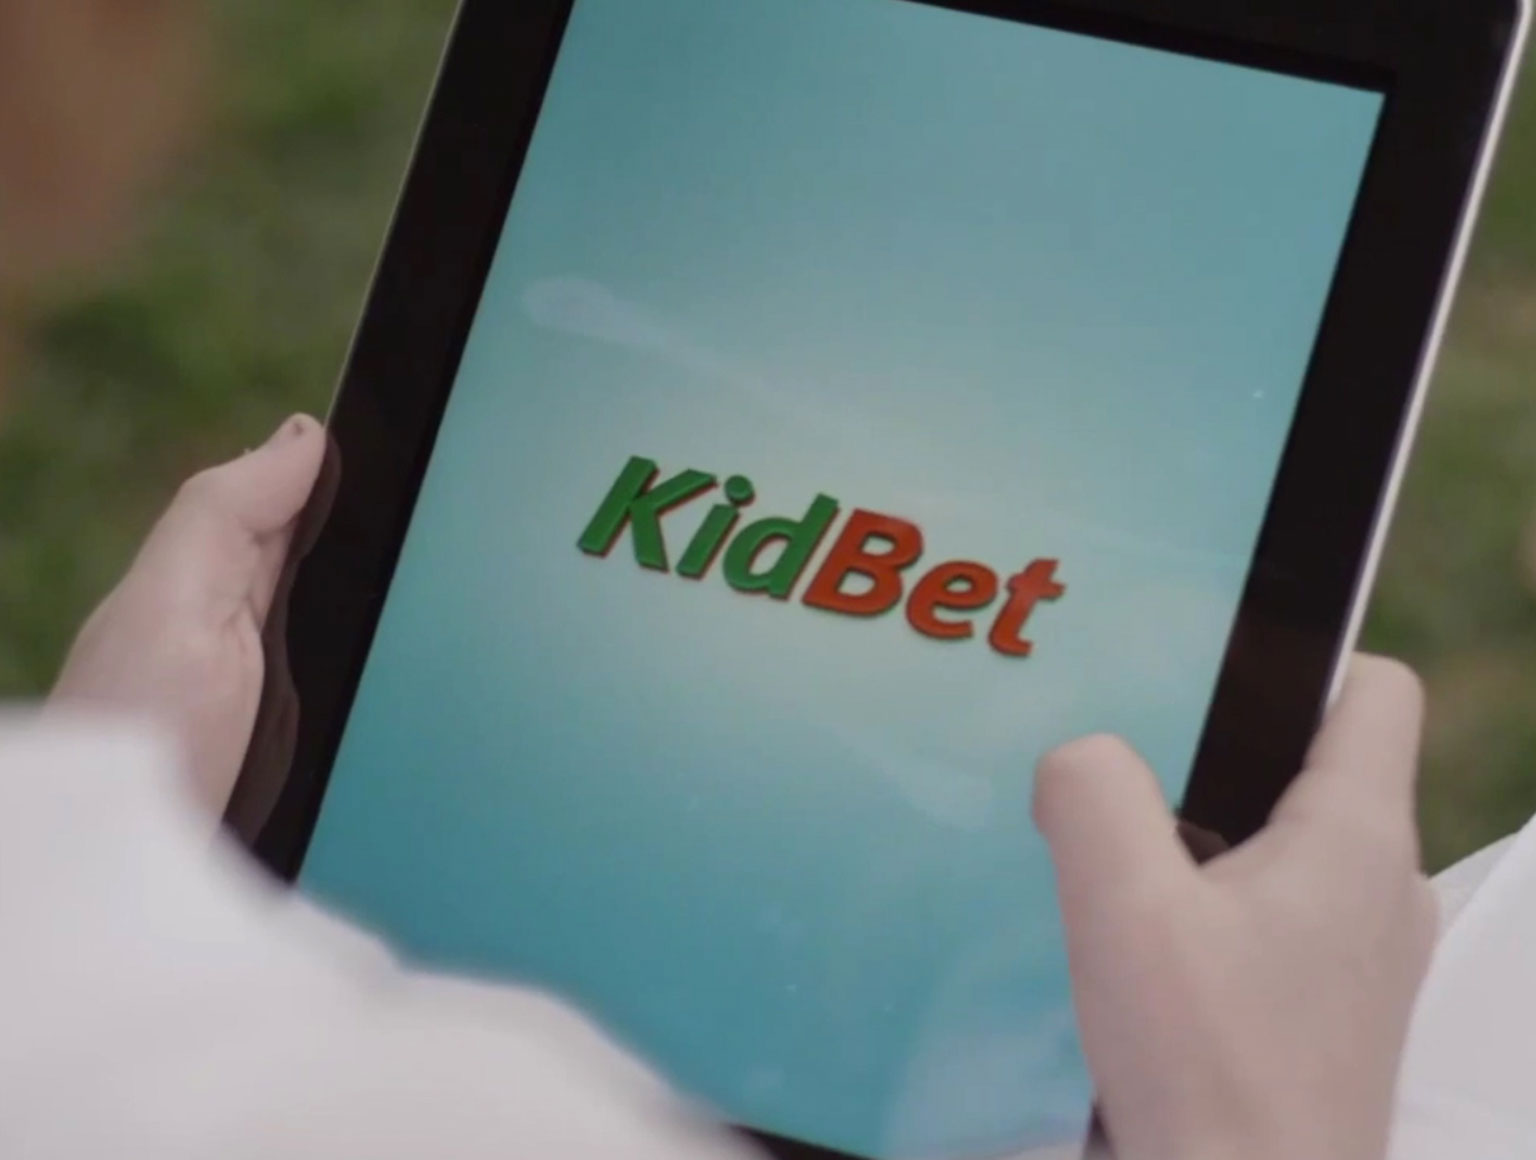 Boy holding tablet with blue screen showing 'KidBet' logo